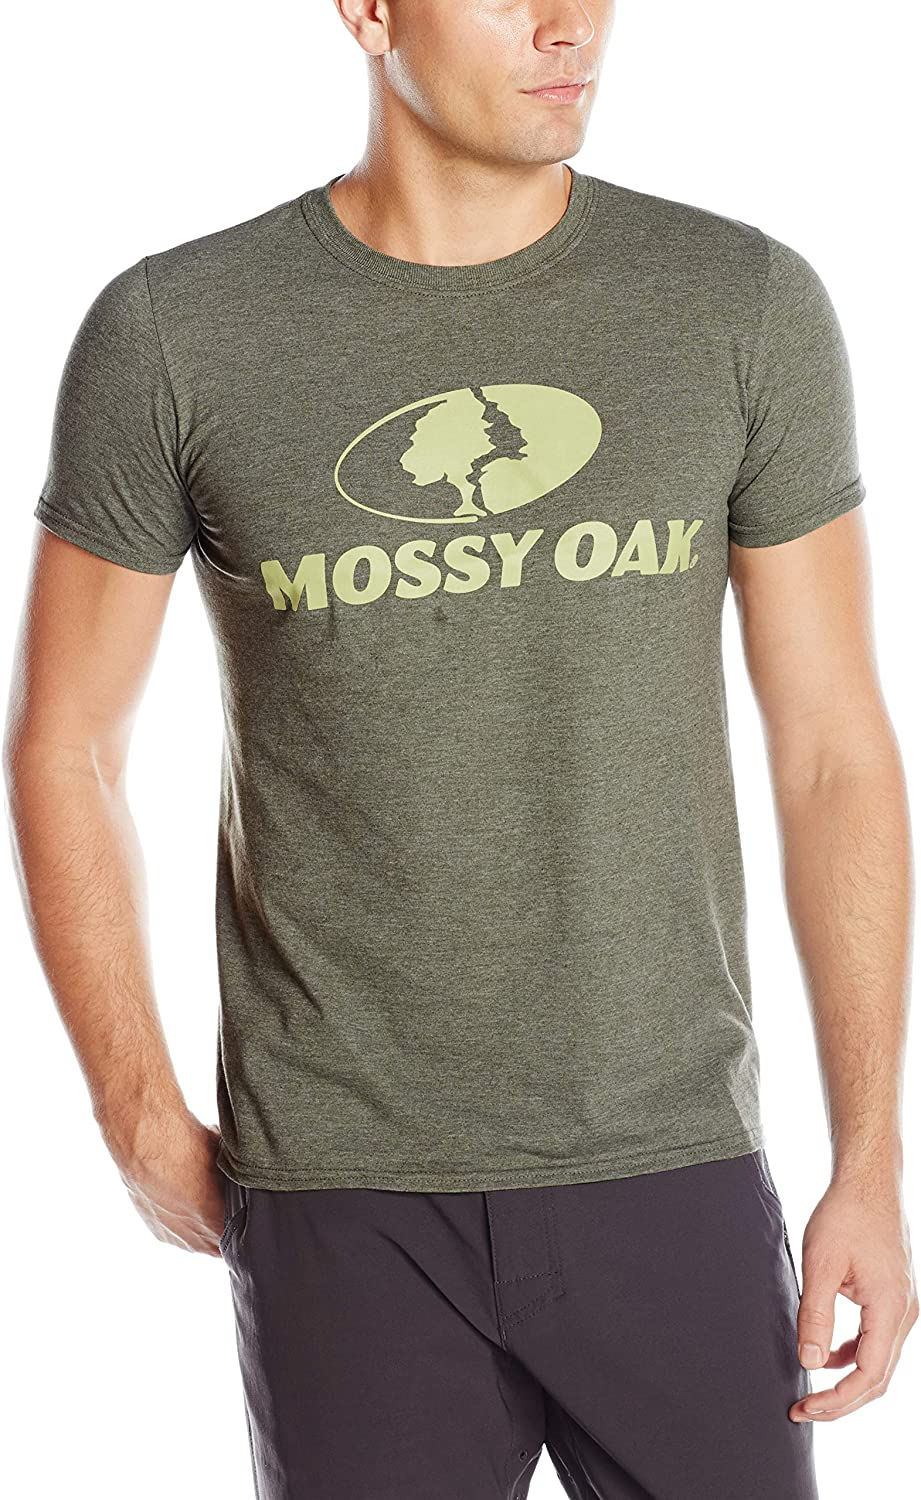 Mossy Oak Mens Short Sleeve Front Tonal Graphic